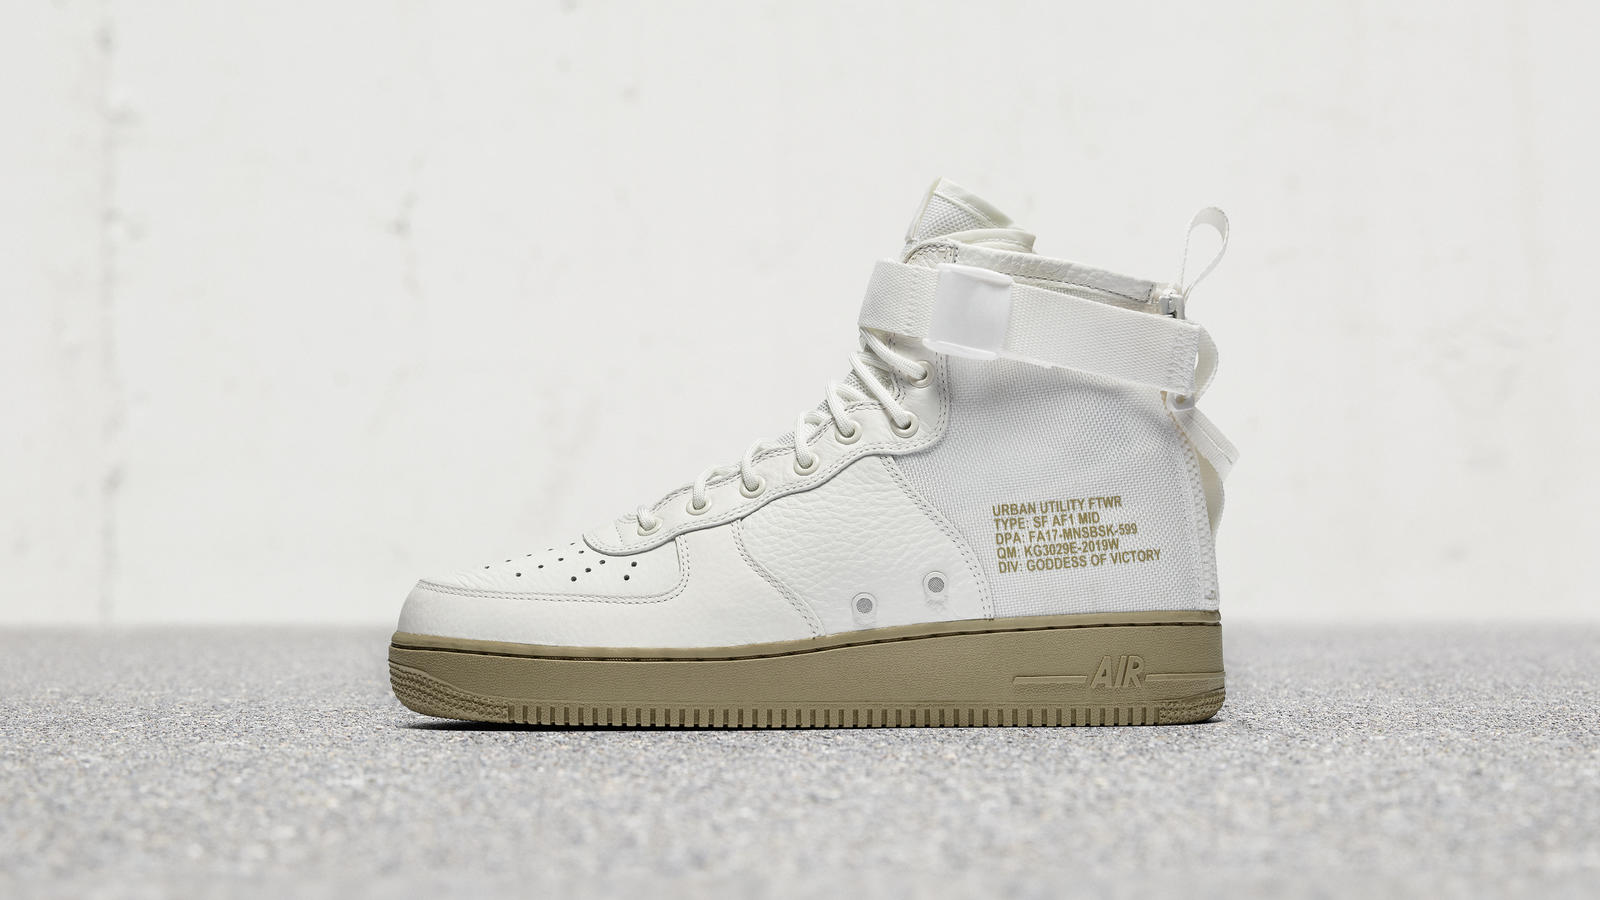 promo code 17e9e 947ab Nike Special Field Air Force 1 Mid - Nike News